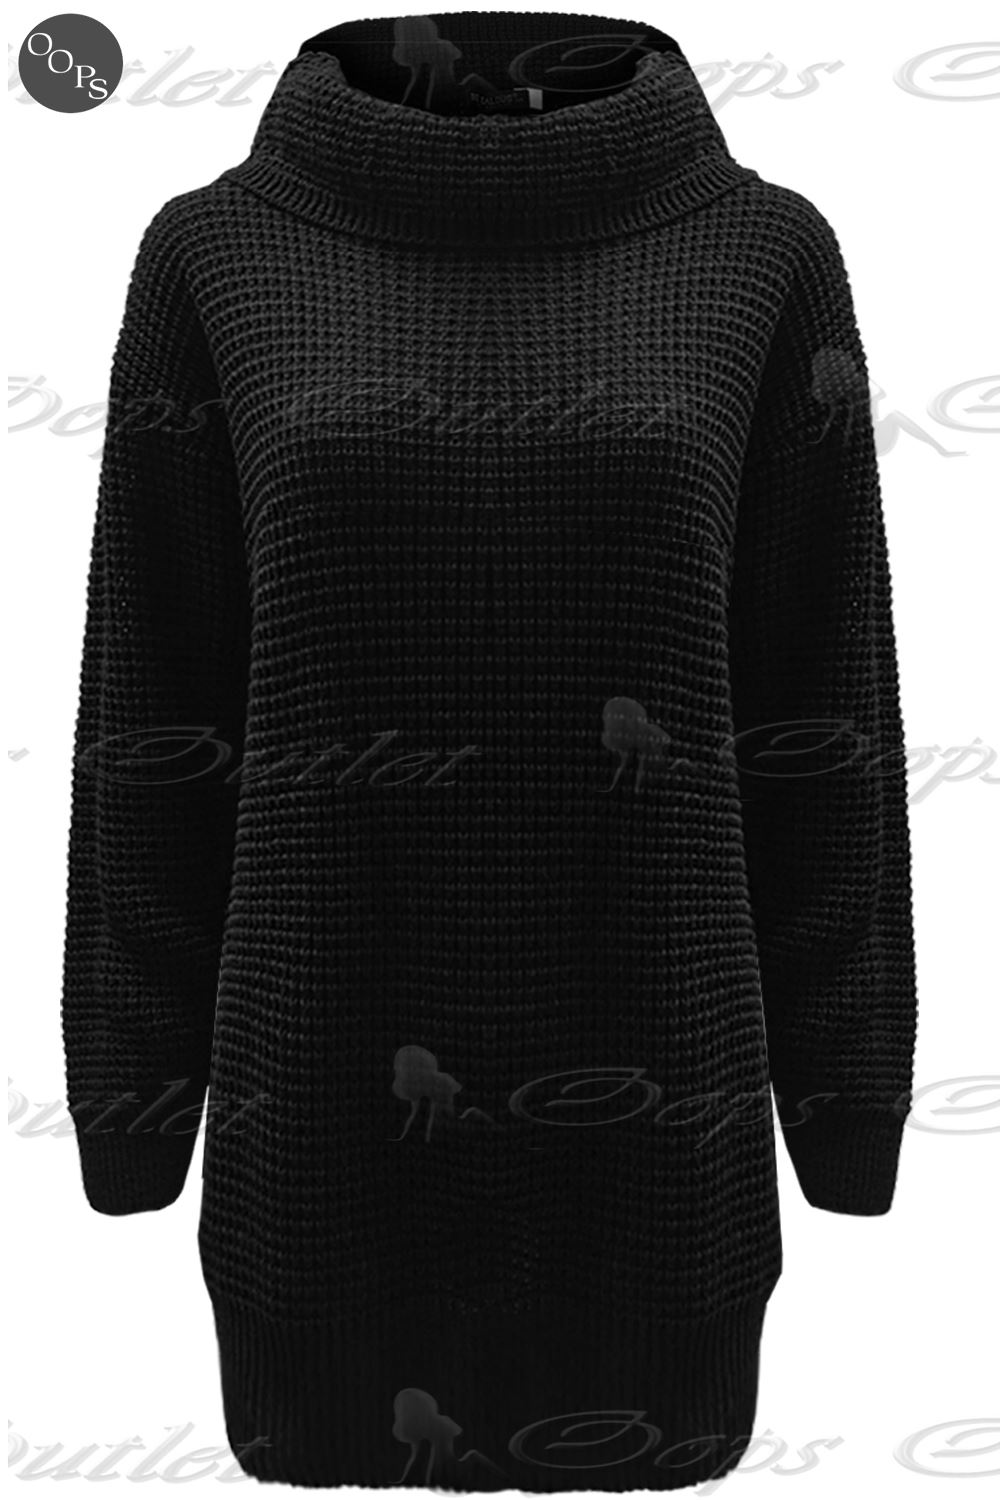 Ladies Chunky Knitted Womens Long Sleeve Oversized Roll Cowl Neck Jumper Dress